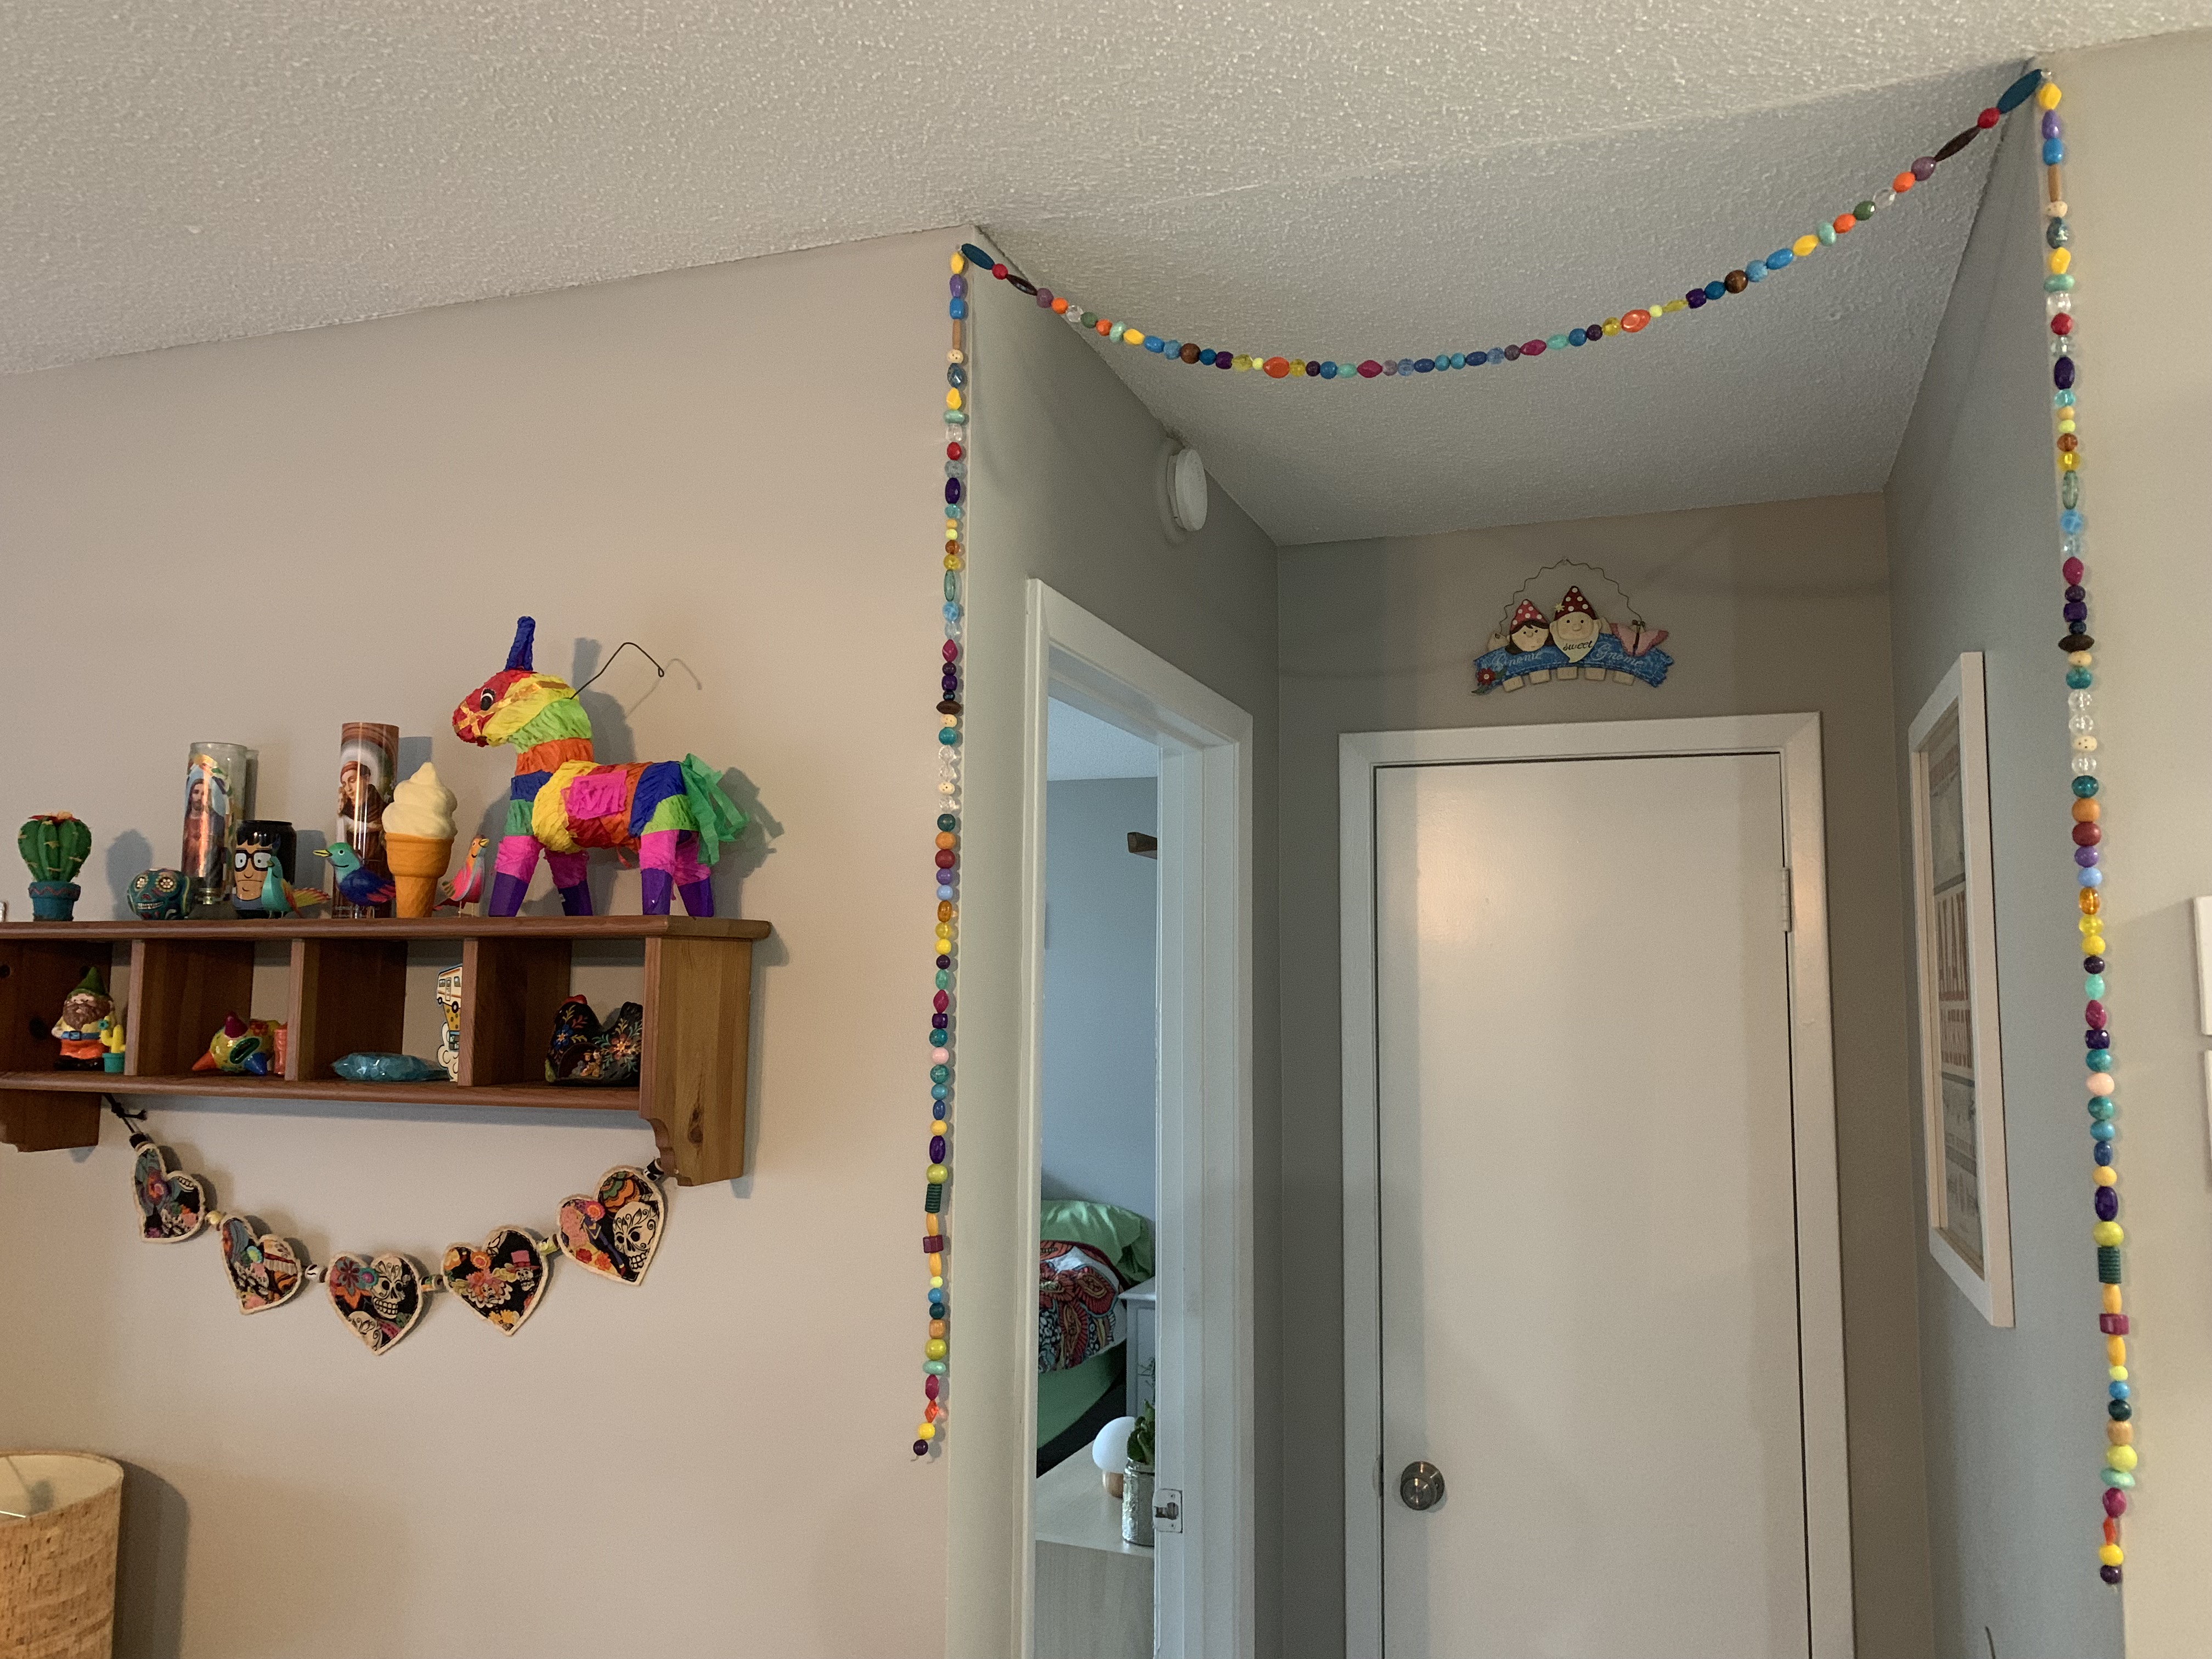 DIY: Boho Inspired Door Frame Bead Curtain Is Sure To Bring A Pop Of Color To Any Room